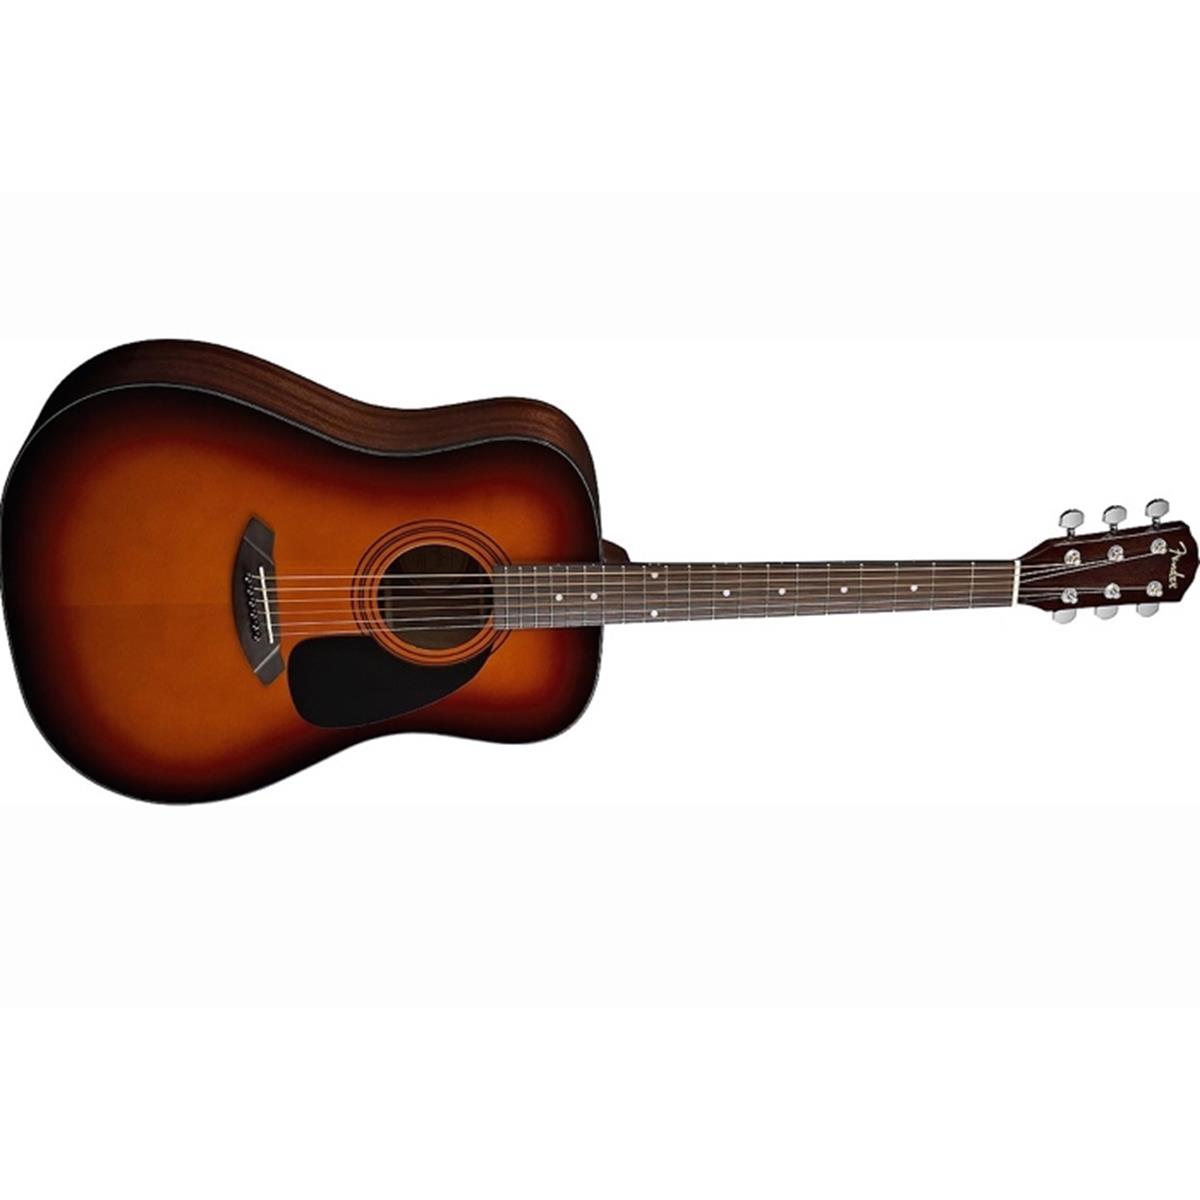 FENDER CD 60 V3 DREADNOUGHT BROWN SUNBURST WN - 0970110532